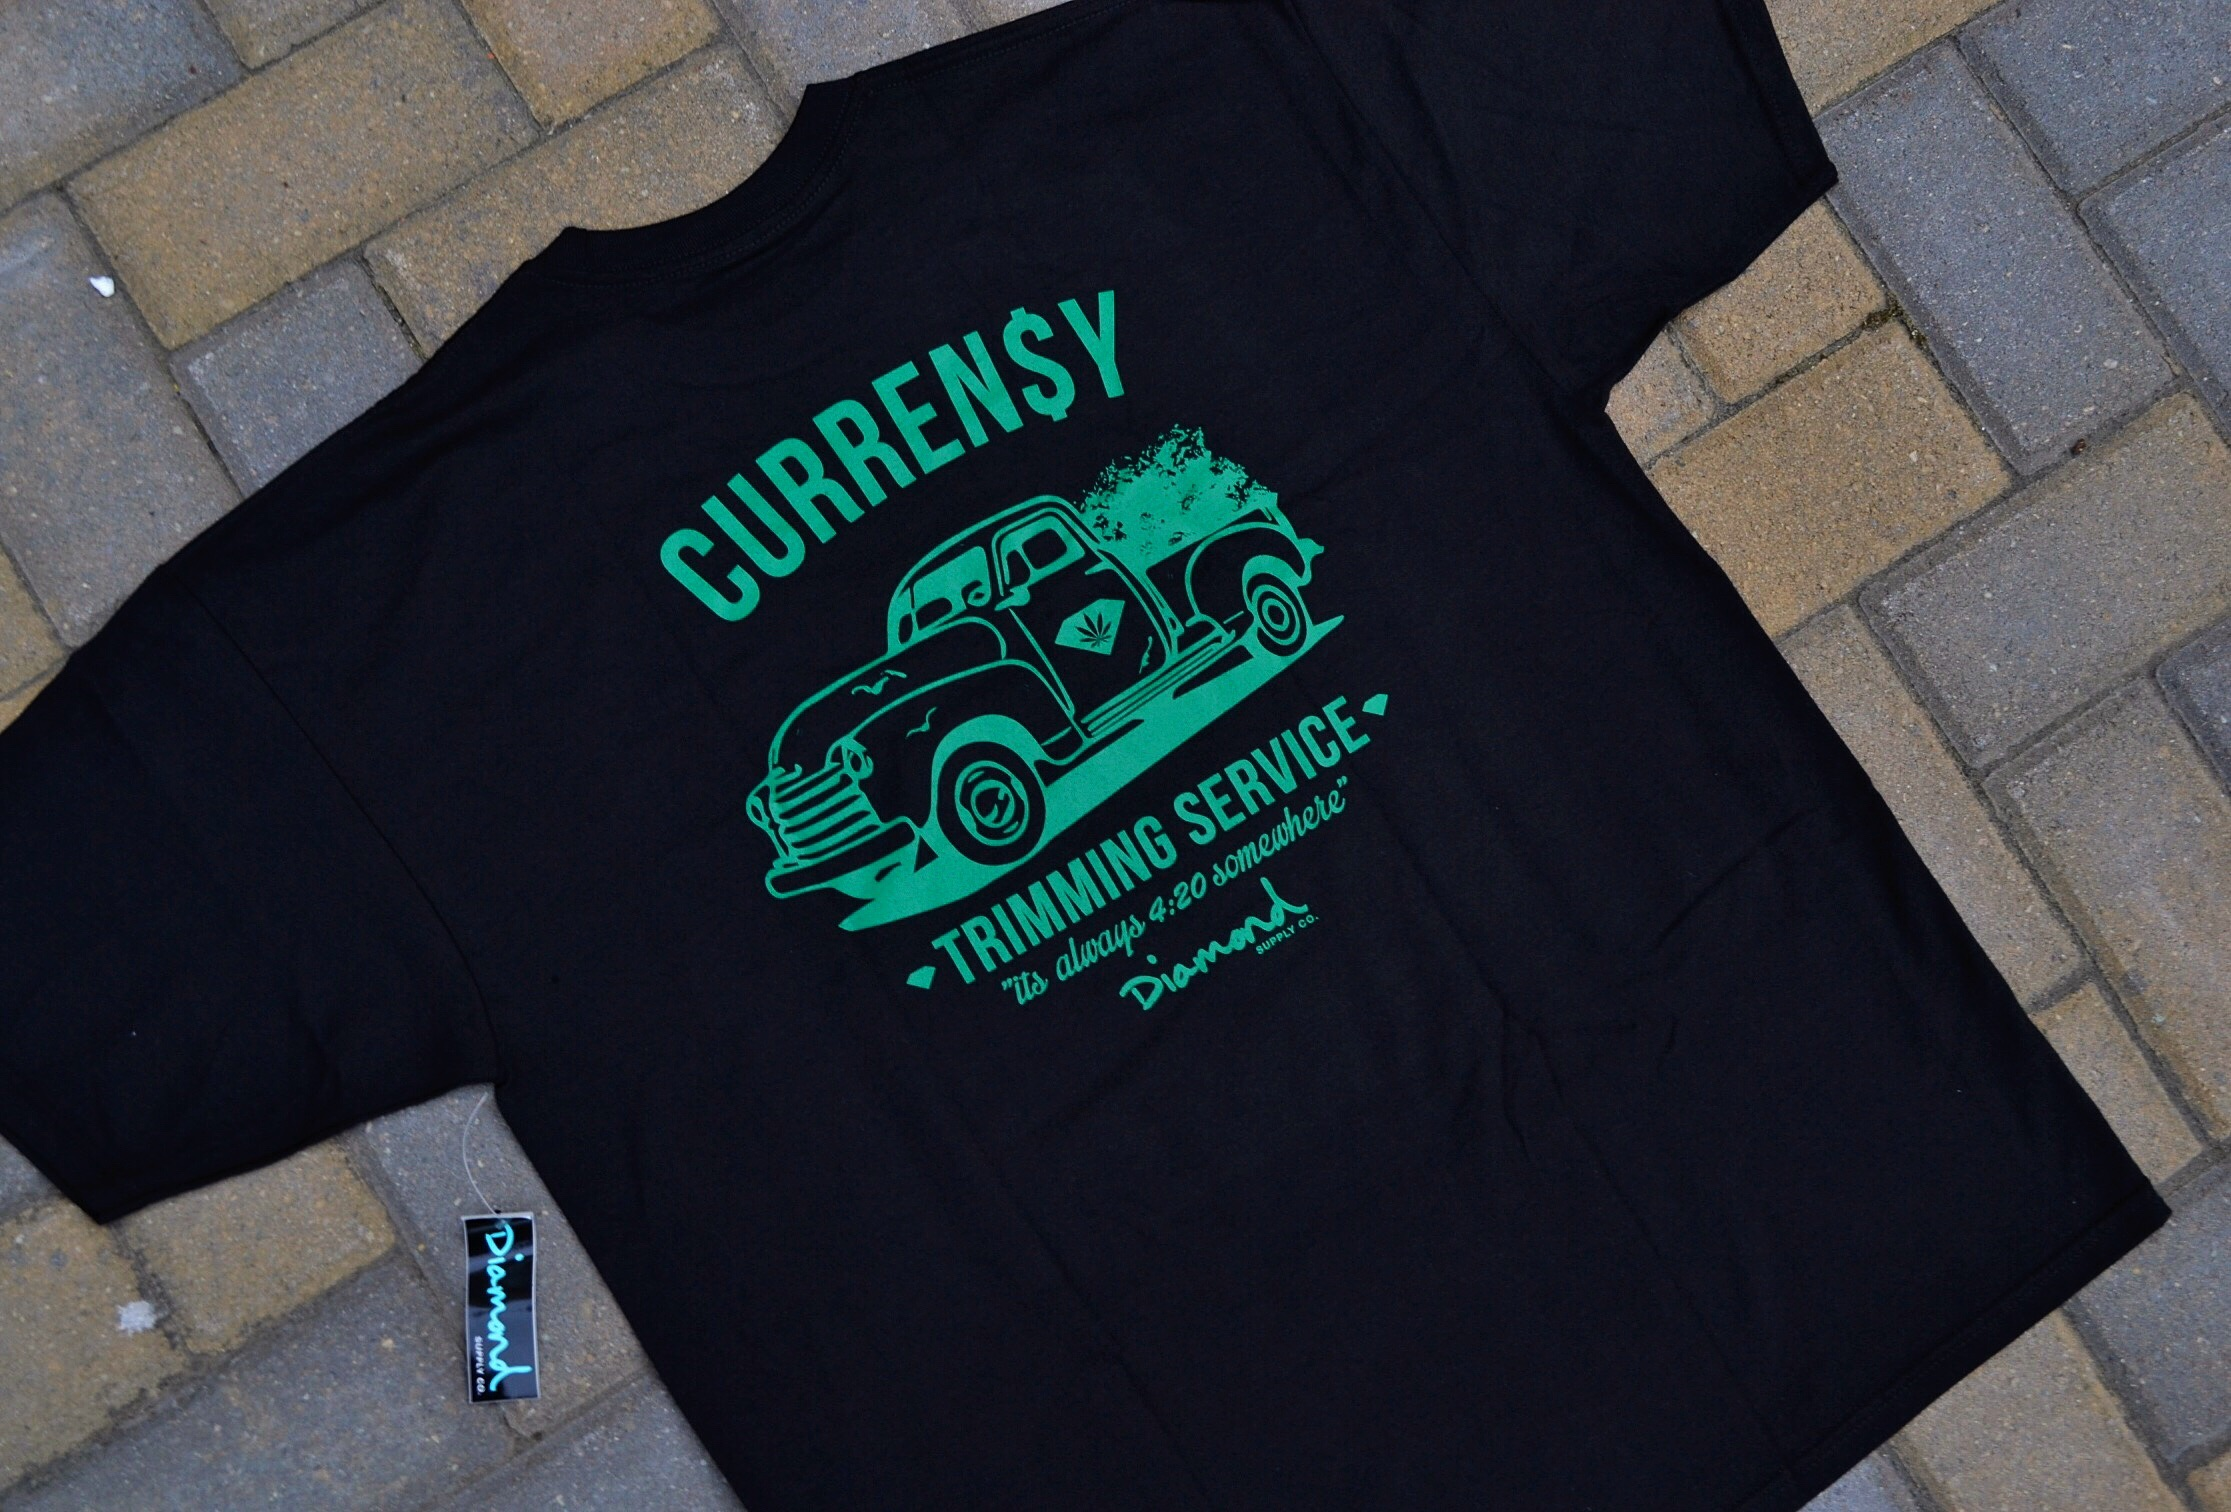 The Curren$y x Diamond Supply Co 4/20 Tee Shirt.